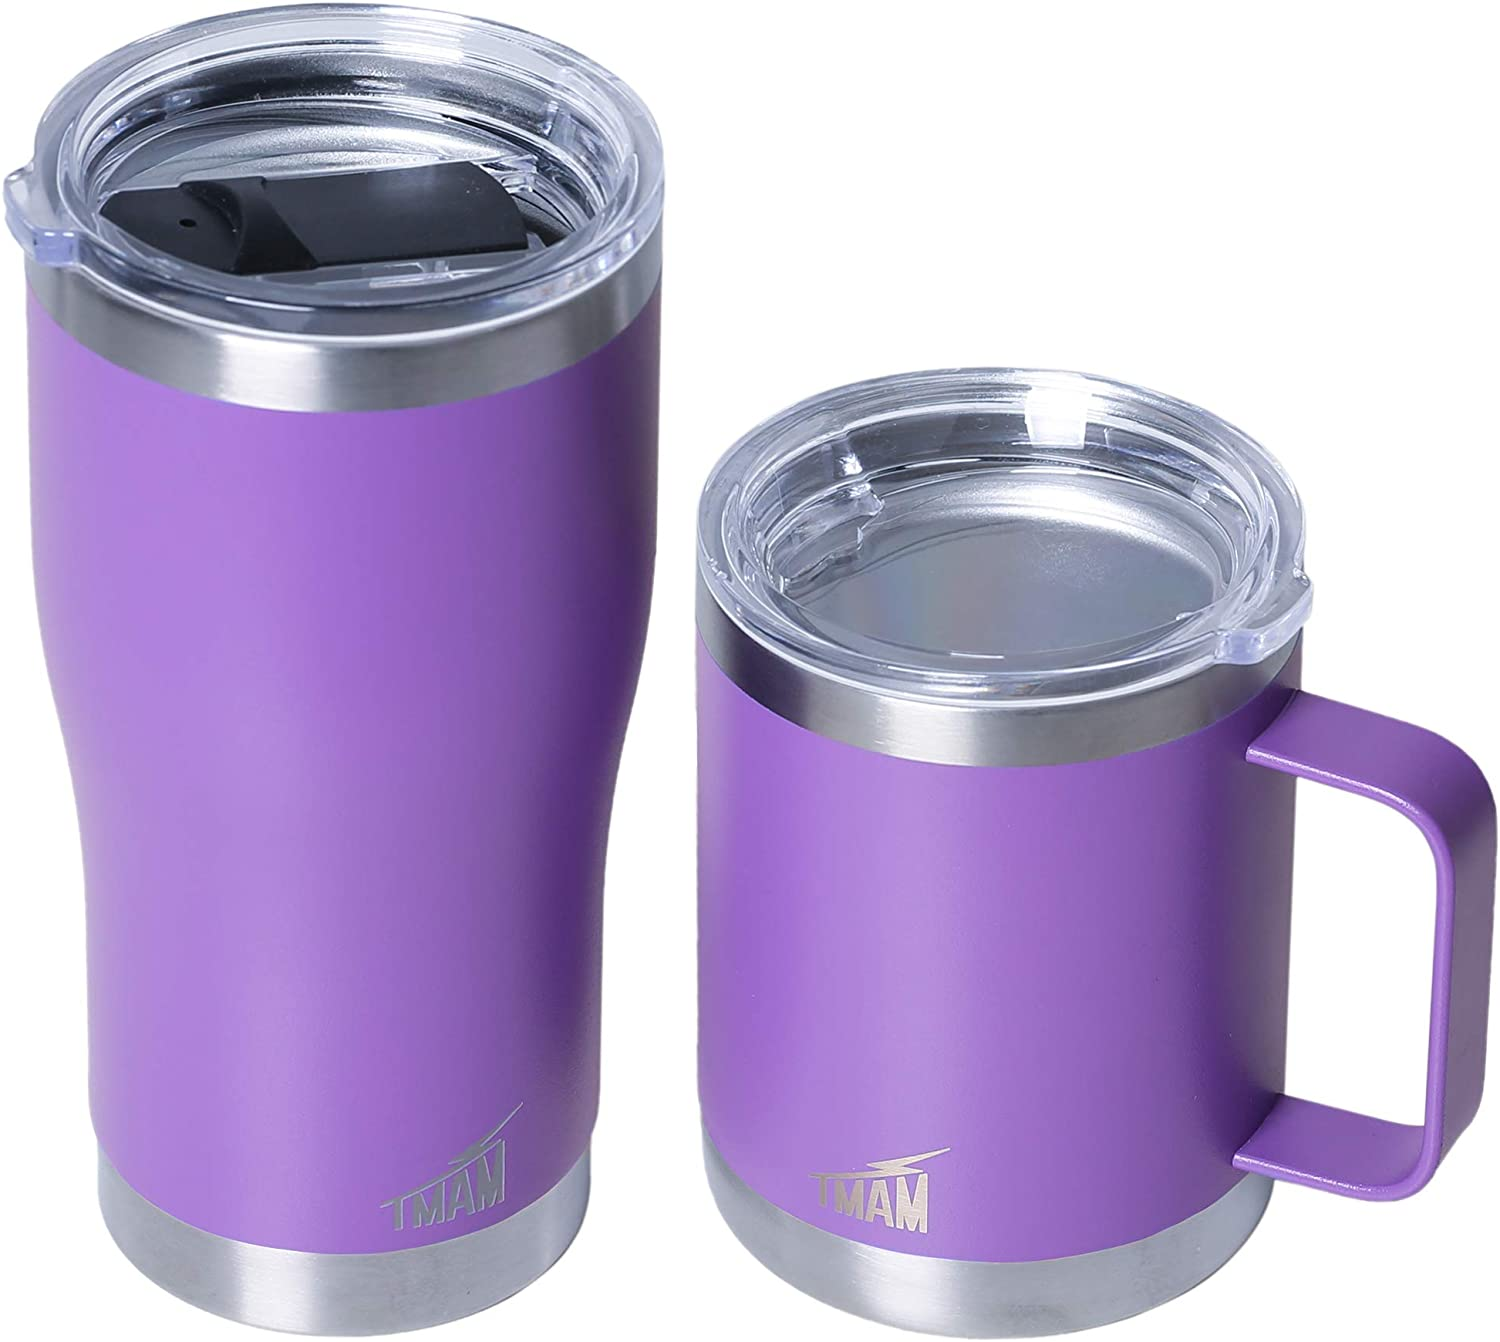 Coffee Mug Tumbler Set with Lid – 20 oz and 12 oz Stainless Steel Double Wall Vacuum Insulated Travel and Camping Cups Sliding and Clear Lid 2 Spare Gaskets Ice Drink and Hot Beverage Gift Box